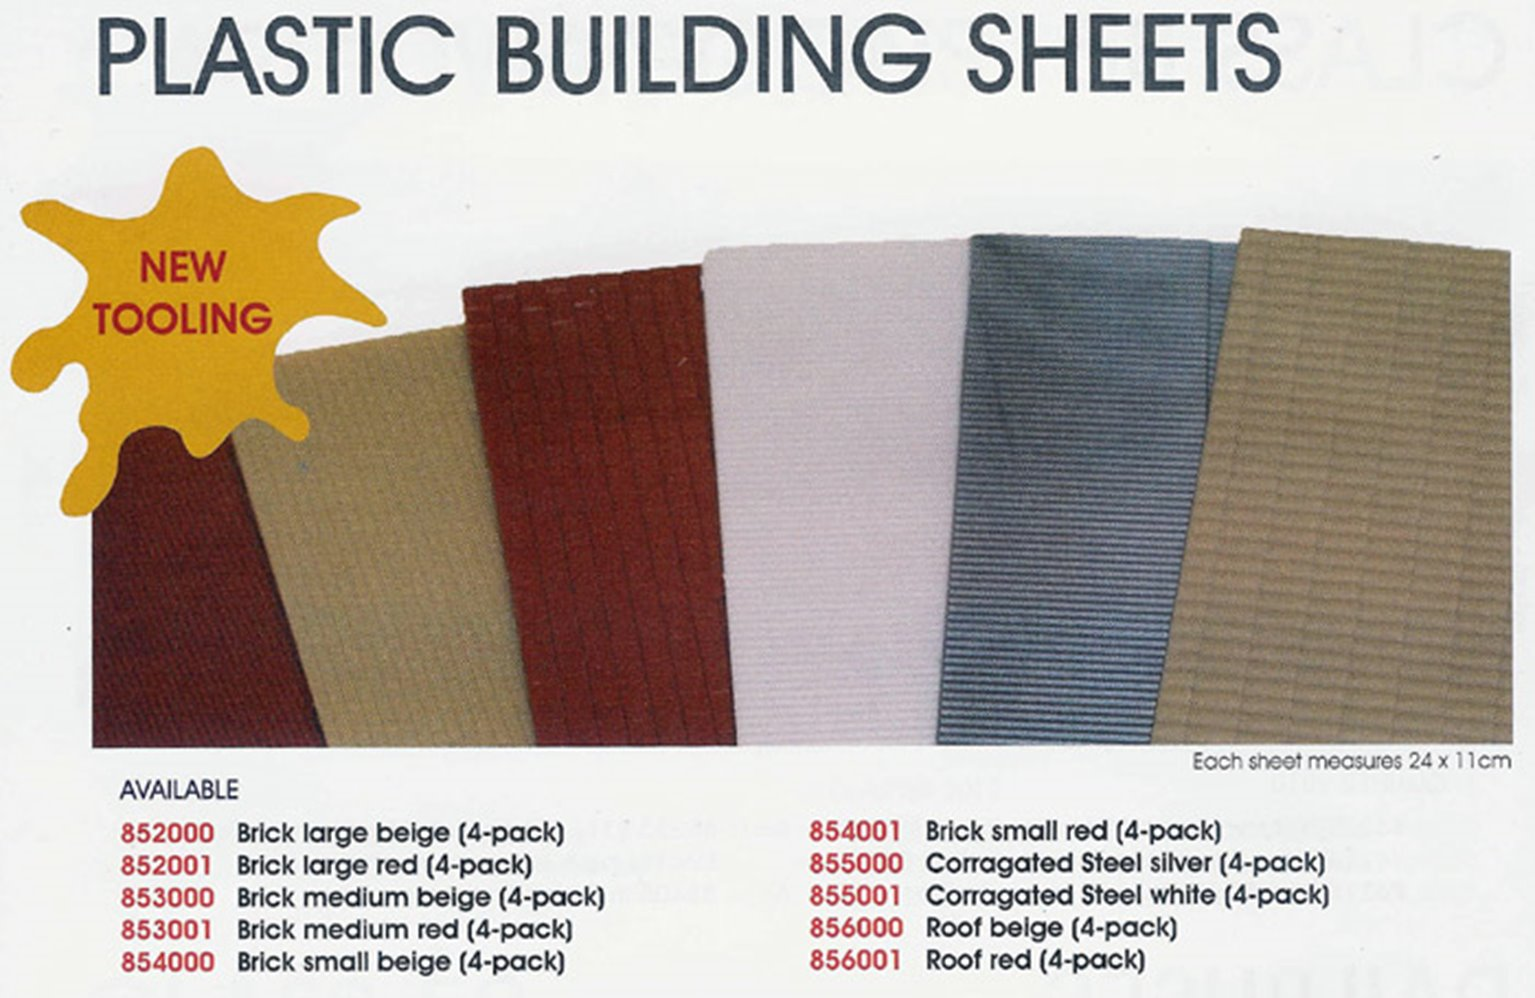 Plastic building sheets - 4 Pack (roof beige)